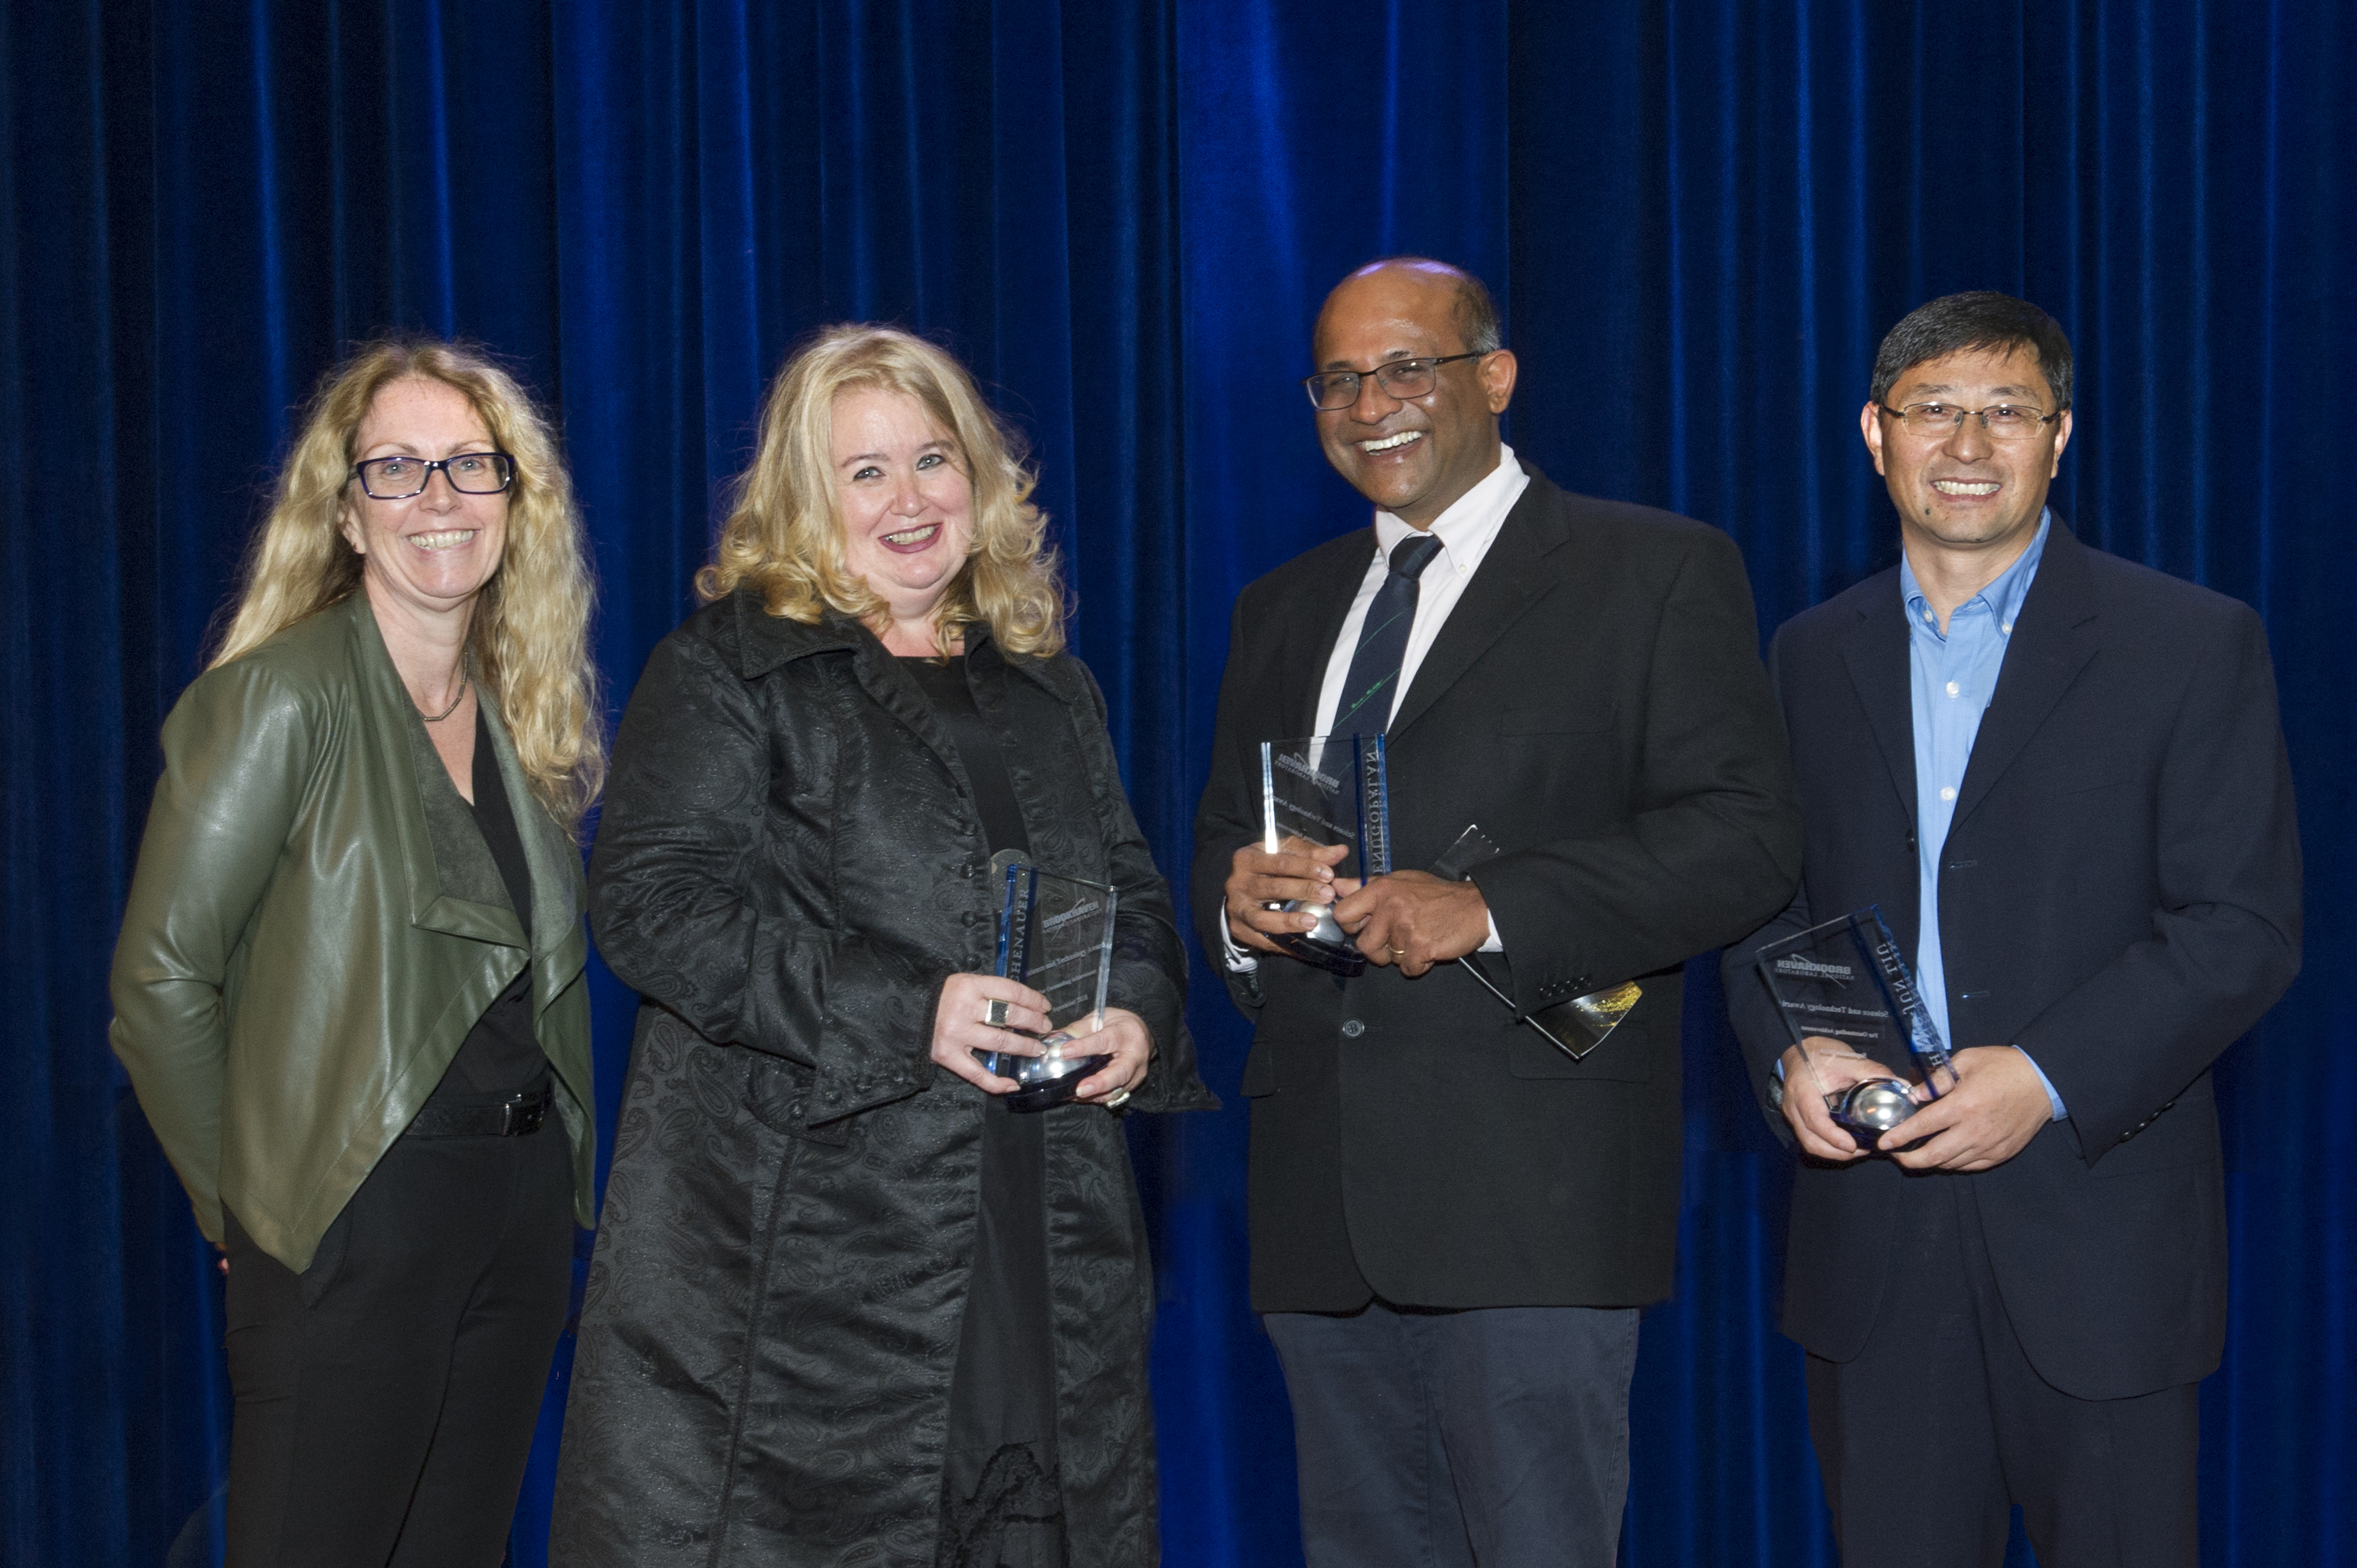 Anette Michel H 470 staff members recognized at 2018 employee awards & vip